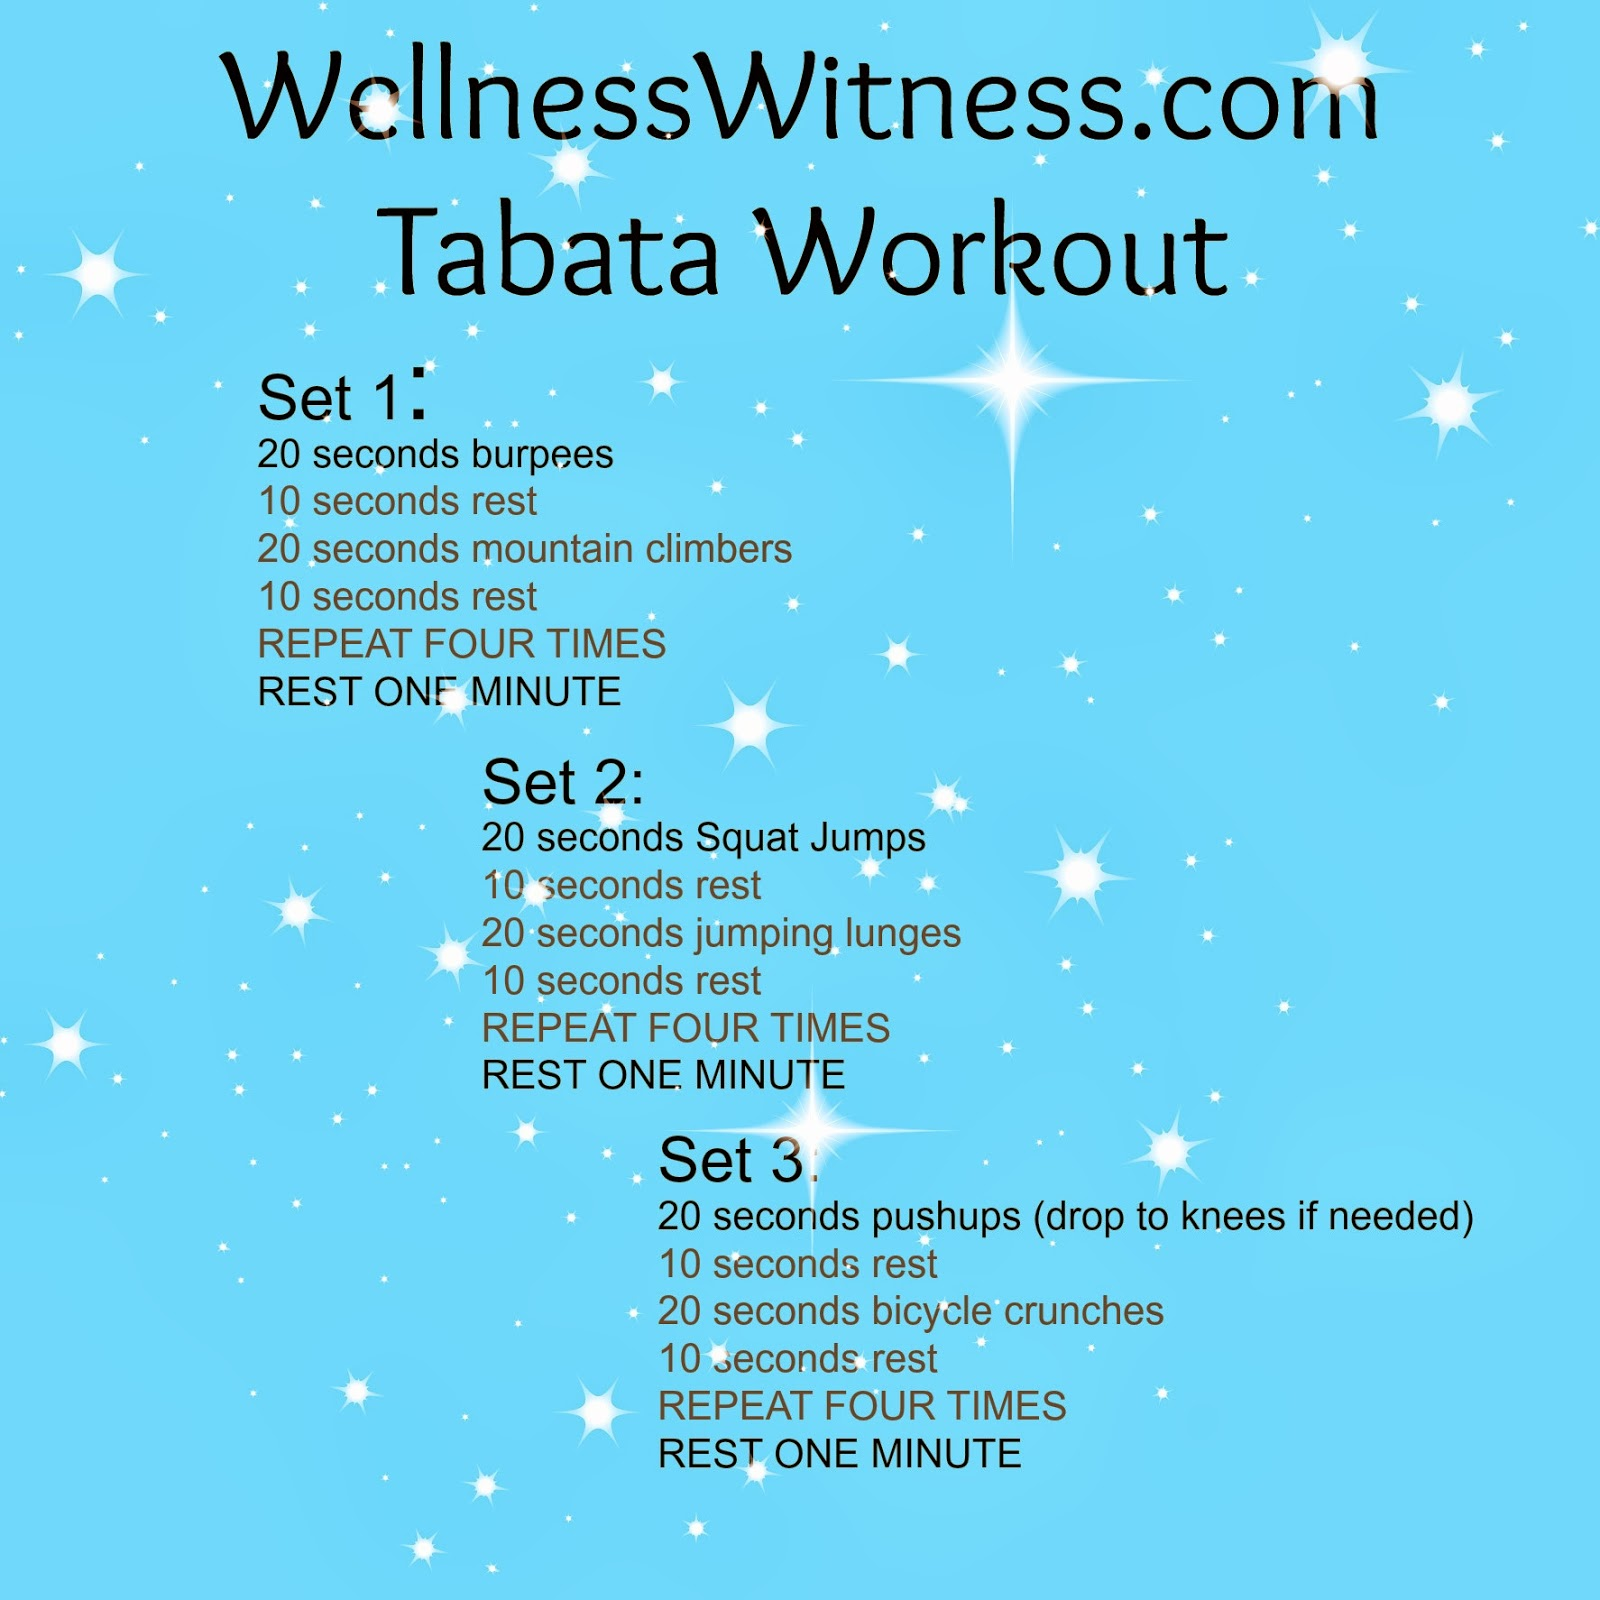 Wellness Witness: At Home Workout Idea...Tabata Style